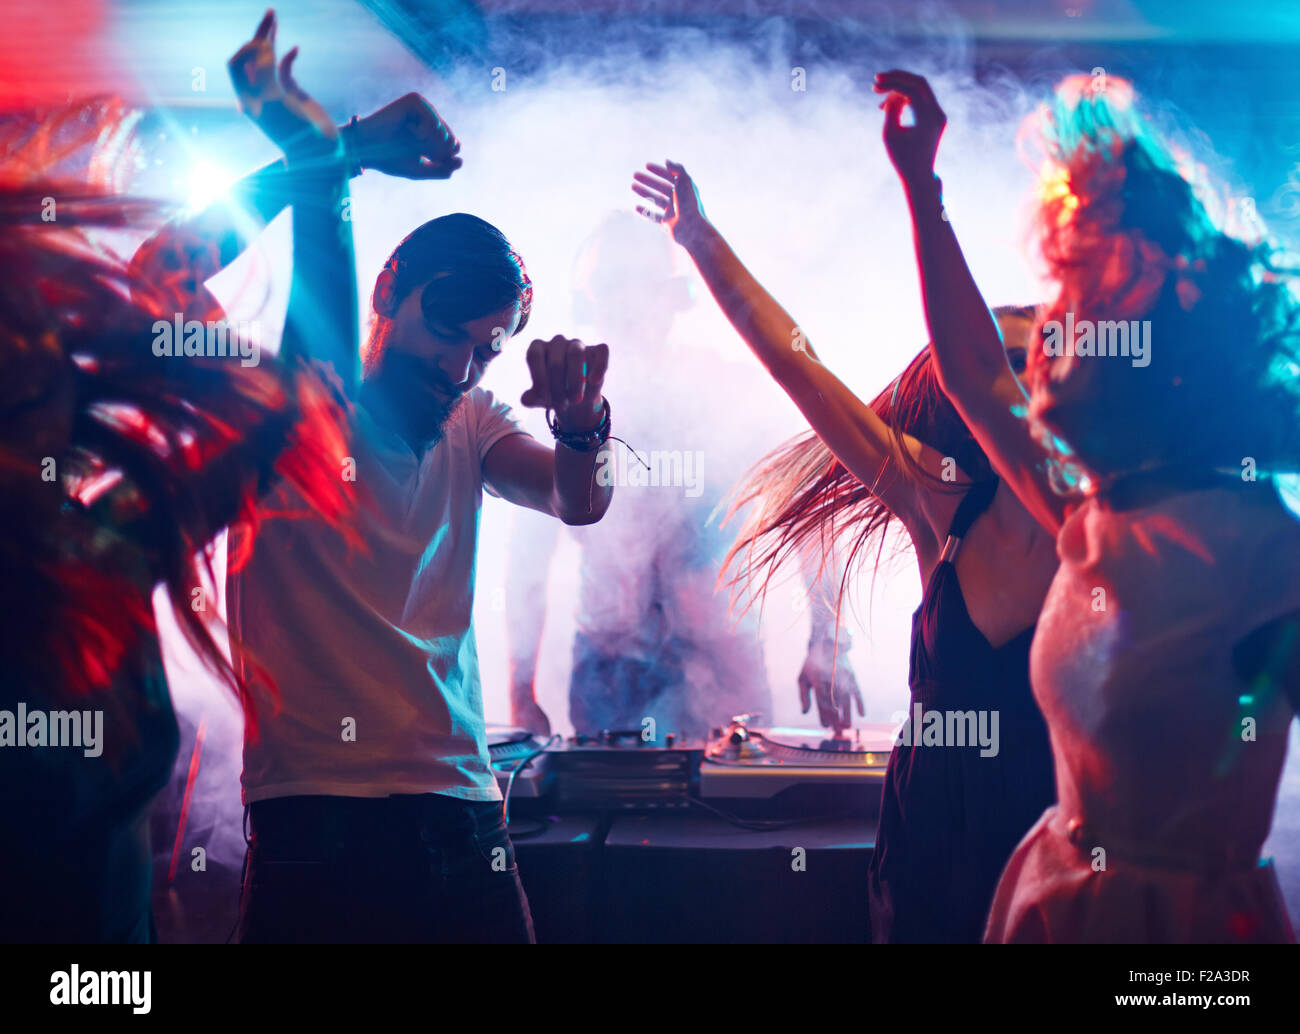 Dancing friends - Stock Image